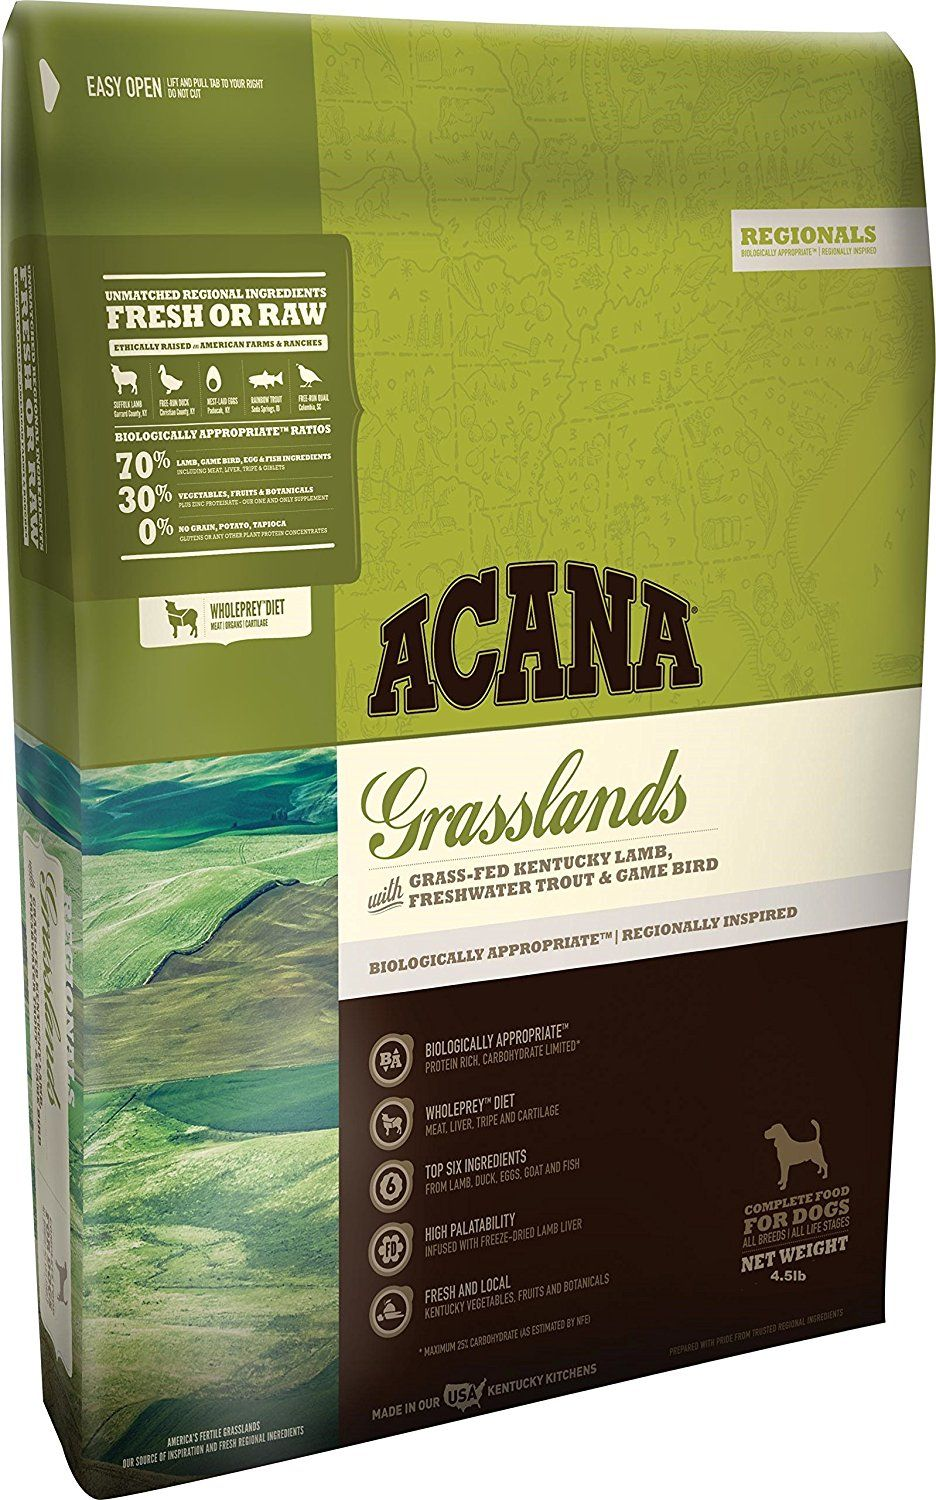 Acana Regionals Grasslands for Dogs, 4.5lbs * To view